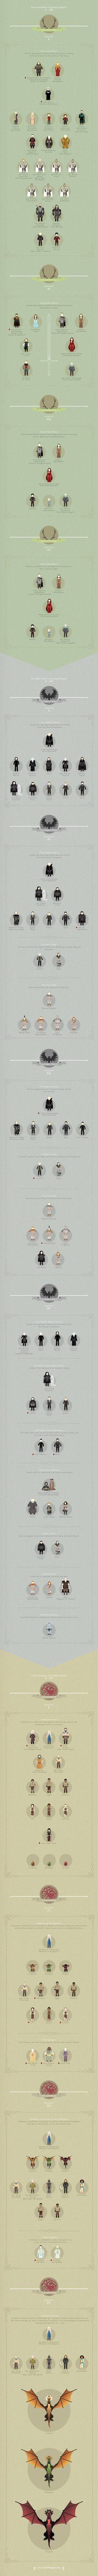 Game of Thrones chart 2 | Fishfinger Creative Agency | Advertising | Branding | Design